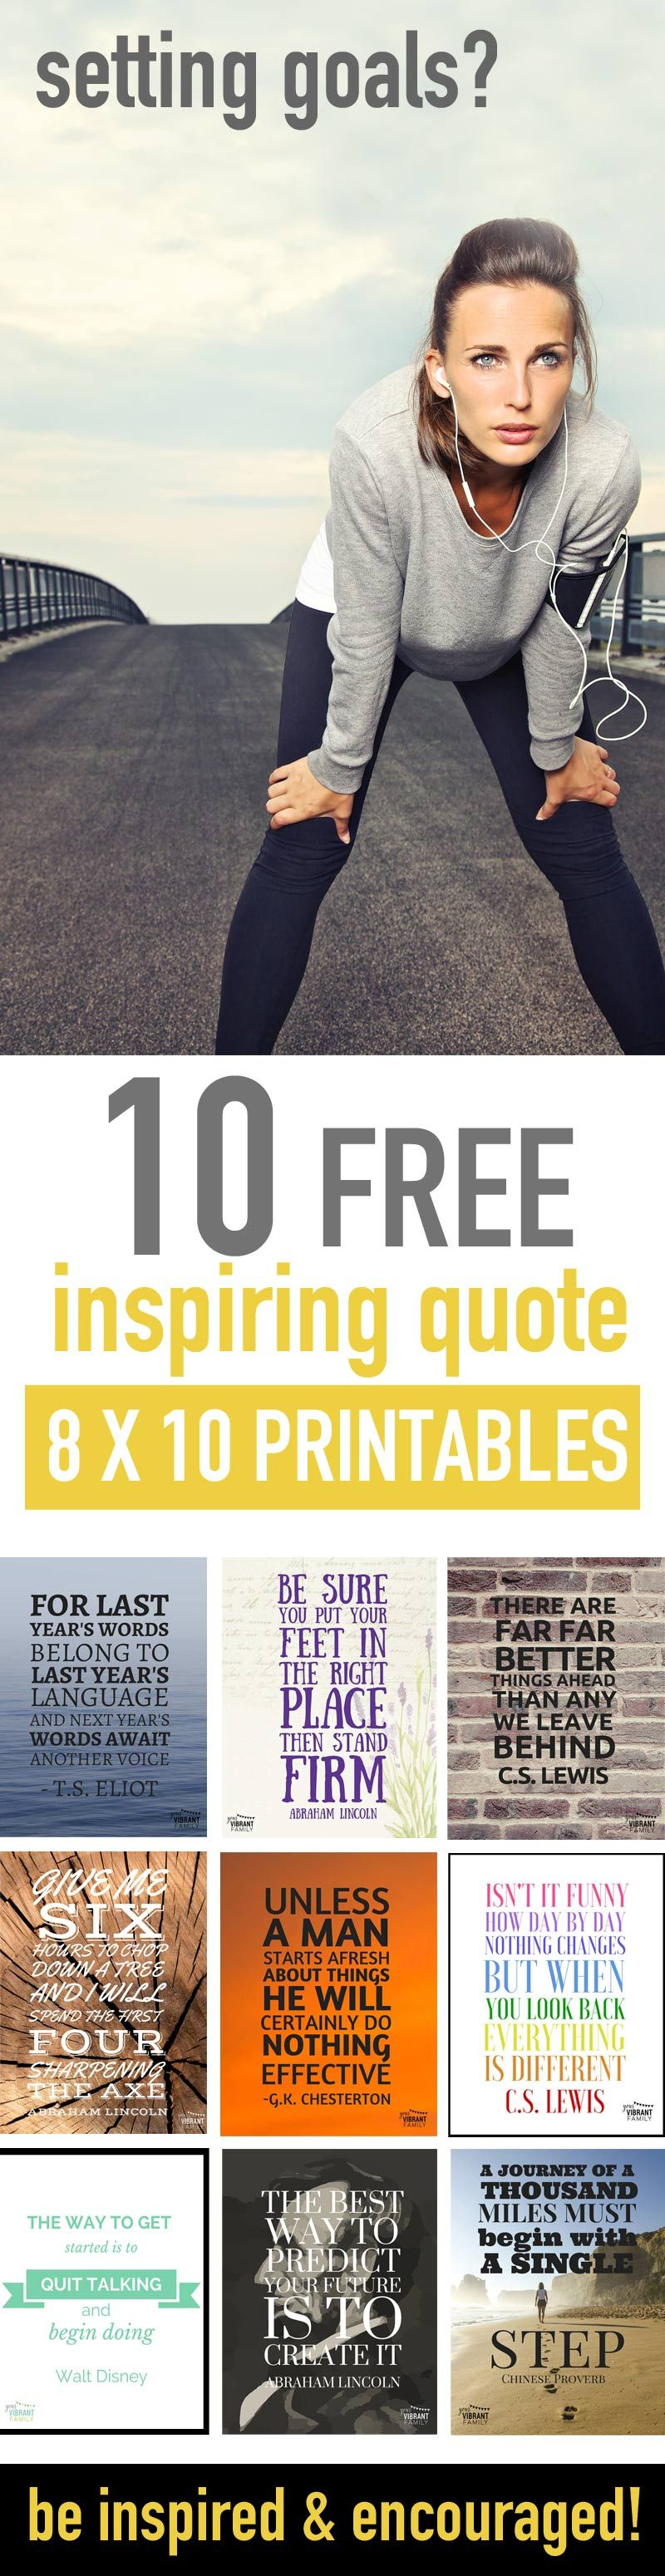 18 Motivational Quotes About Successful Goal Setting | SUCCESS |Goal Setting Quotes Inspirational